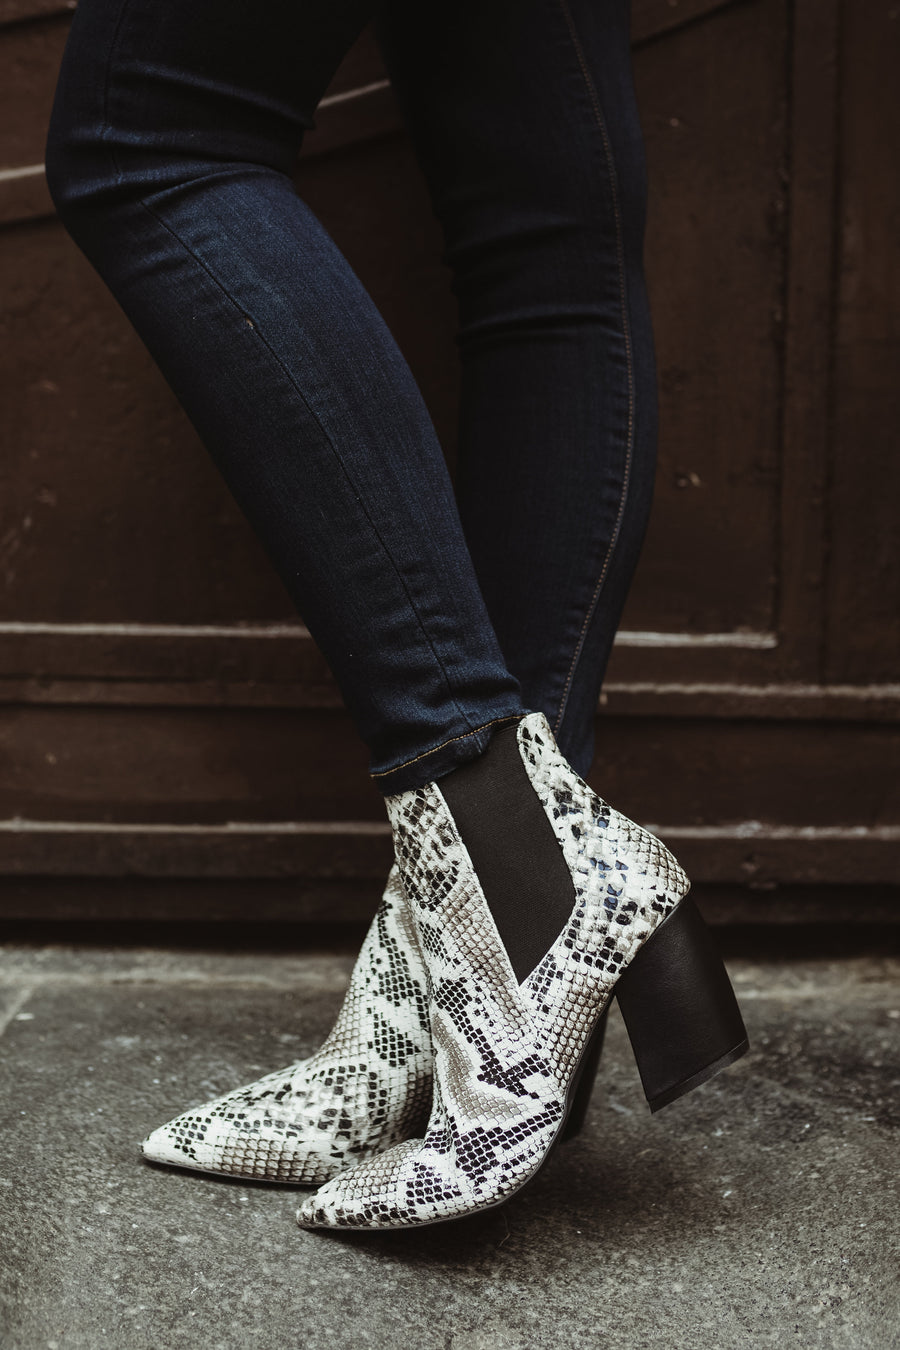 Milkyway Ankle Boots in Snakeskin